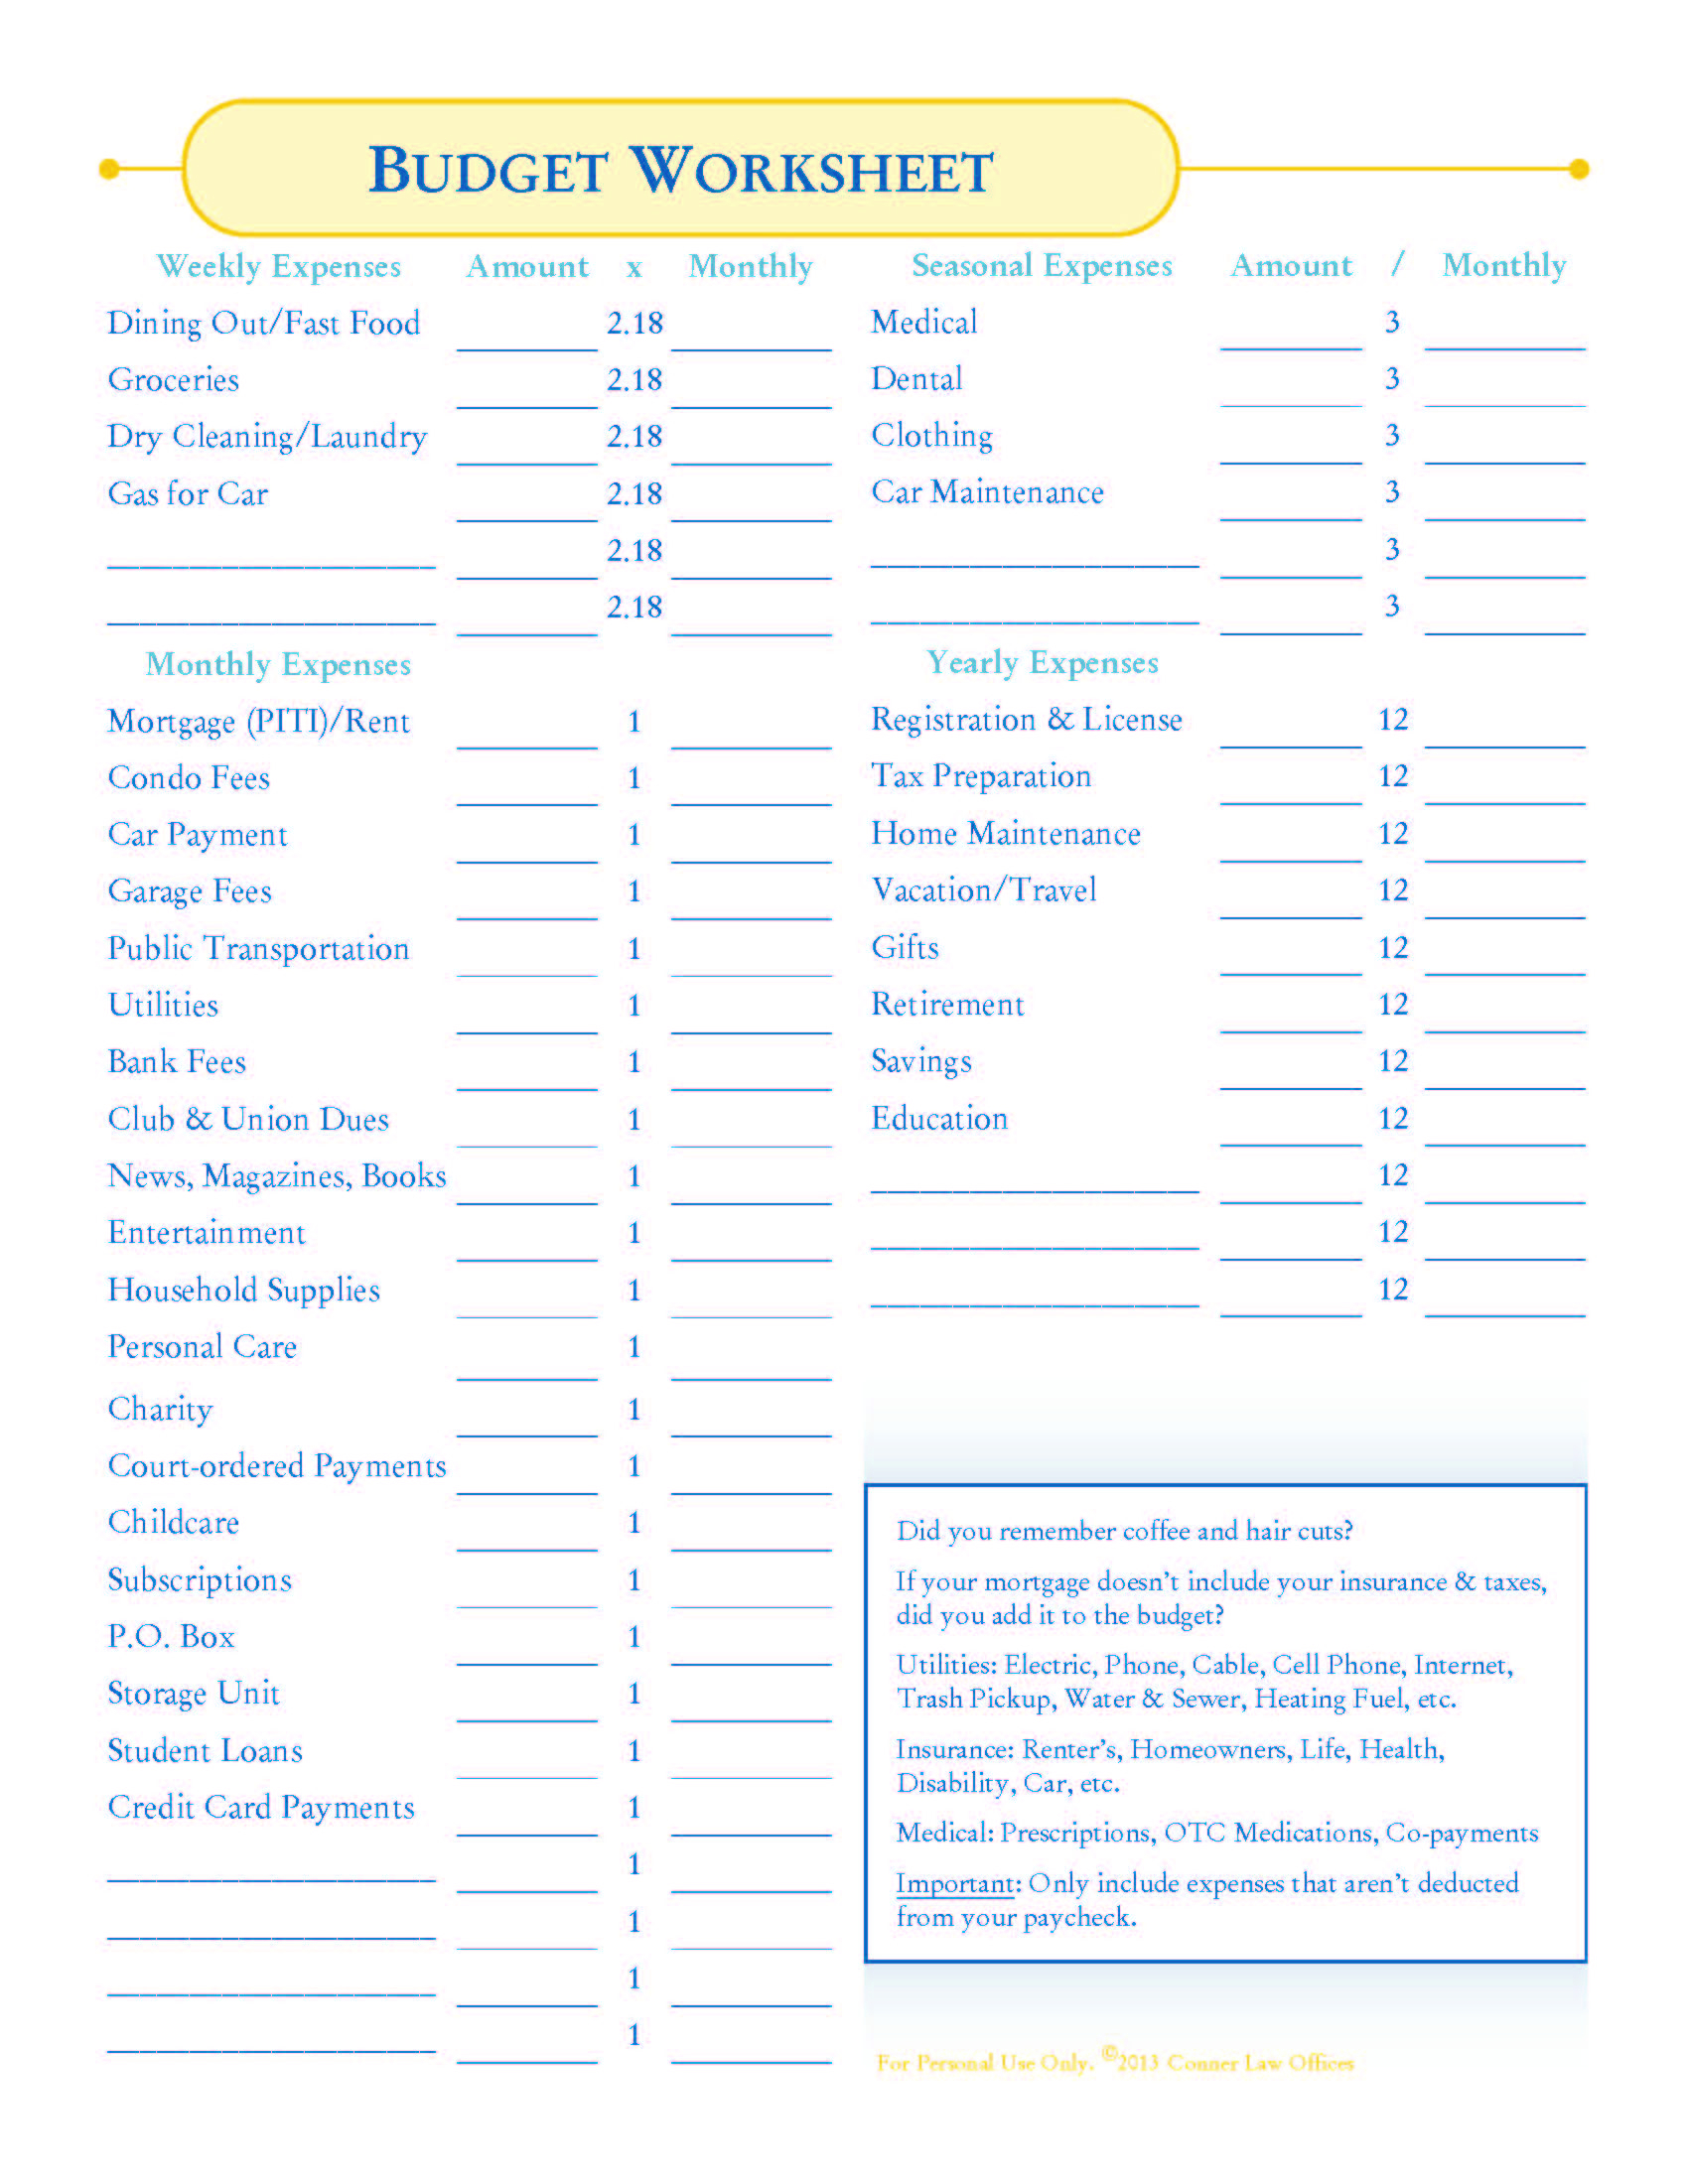 How To Make A #budget + #free Budget Worksheets! | Budgeting